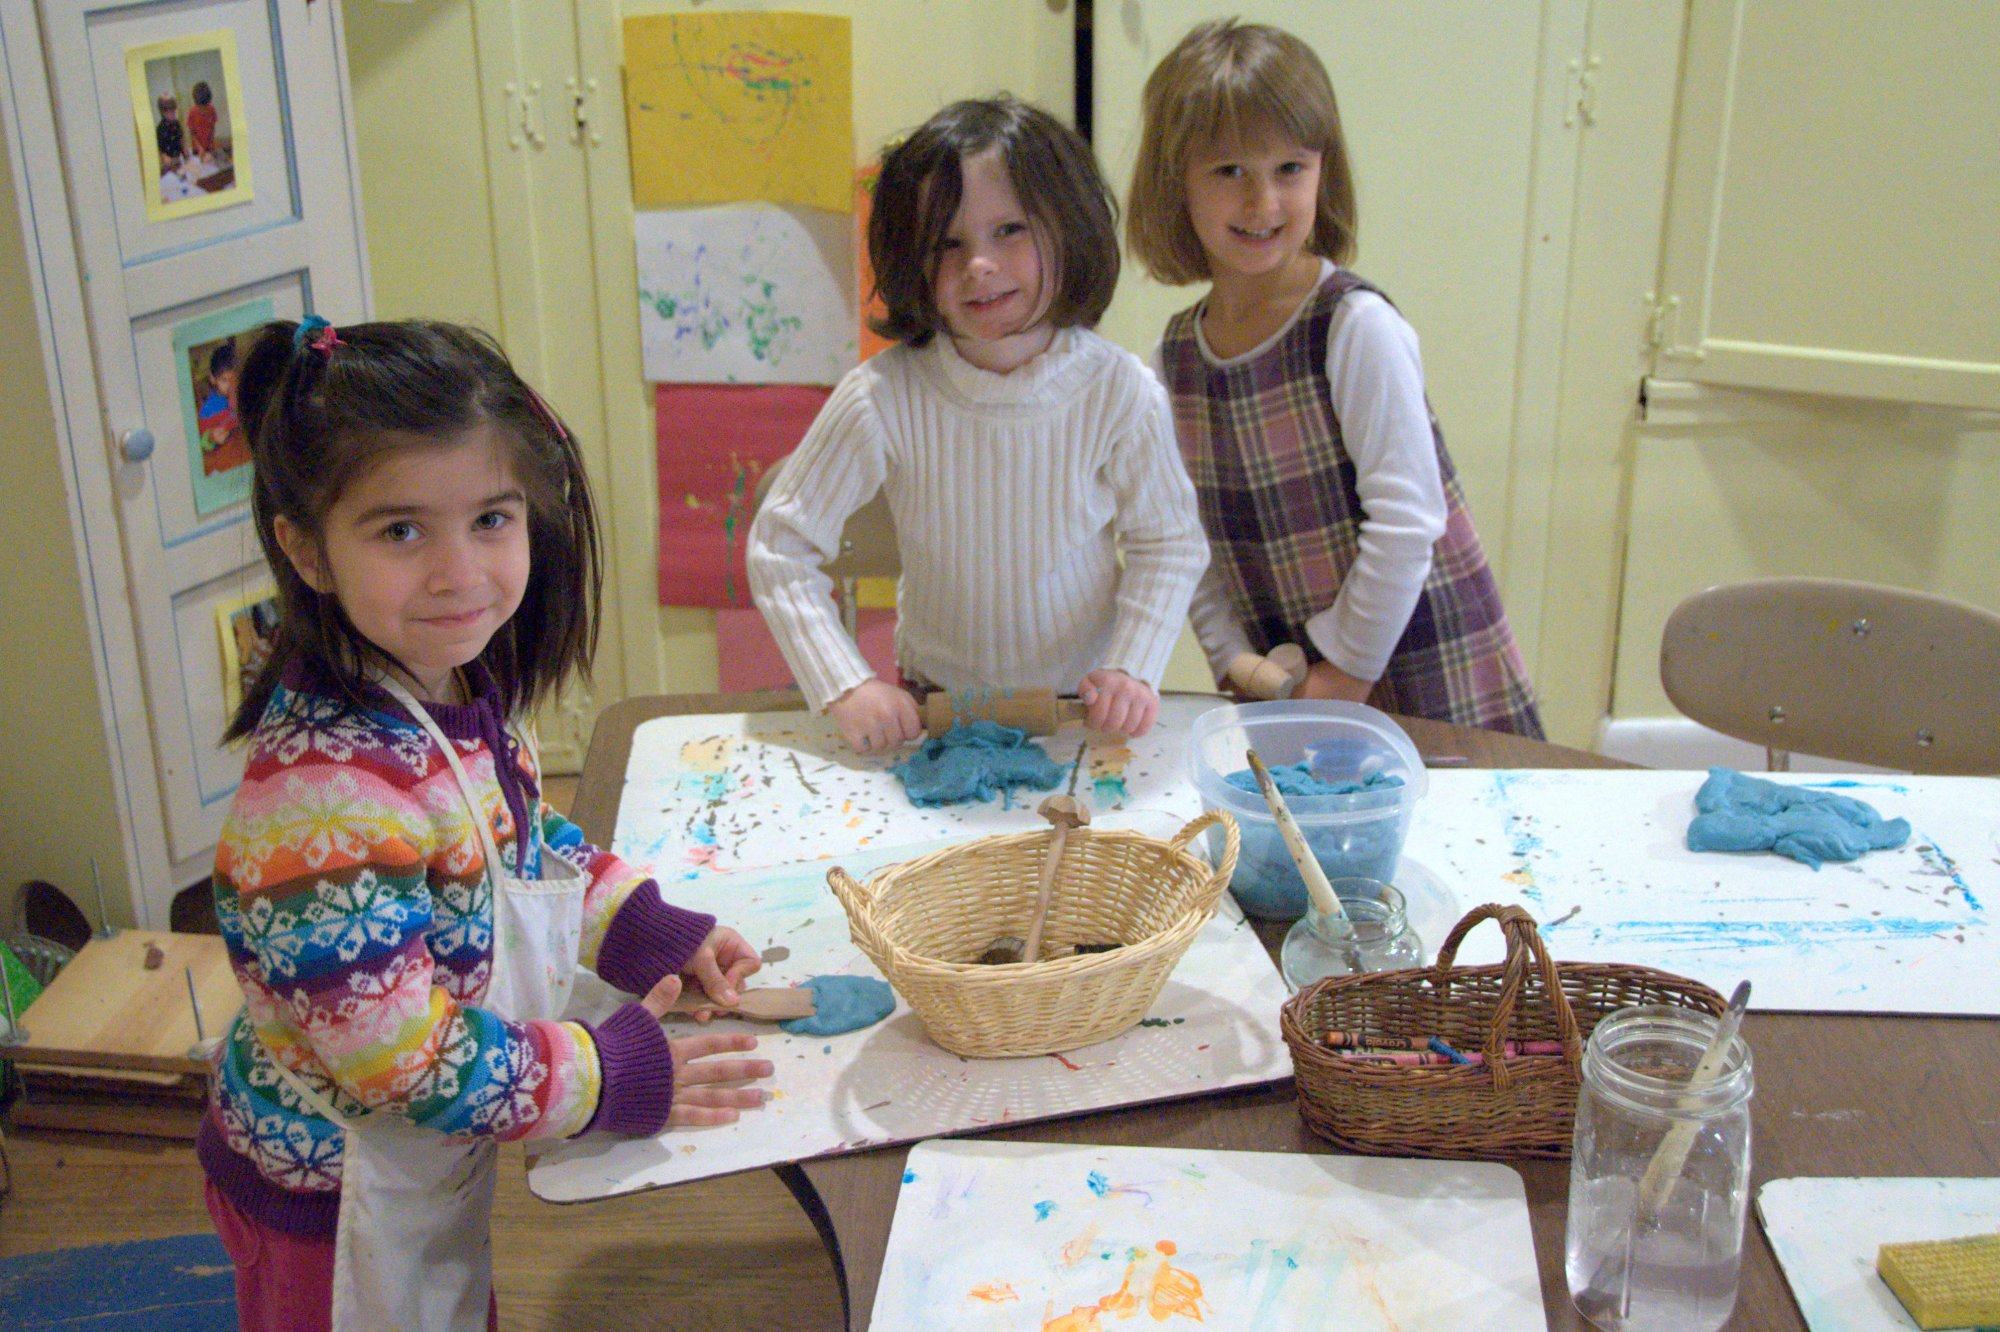 Three girls, aged around 7, engaged in craft actitivies